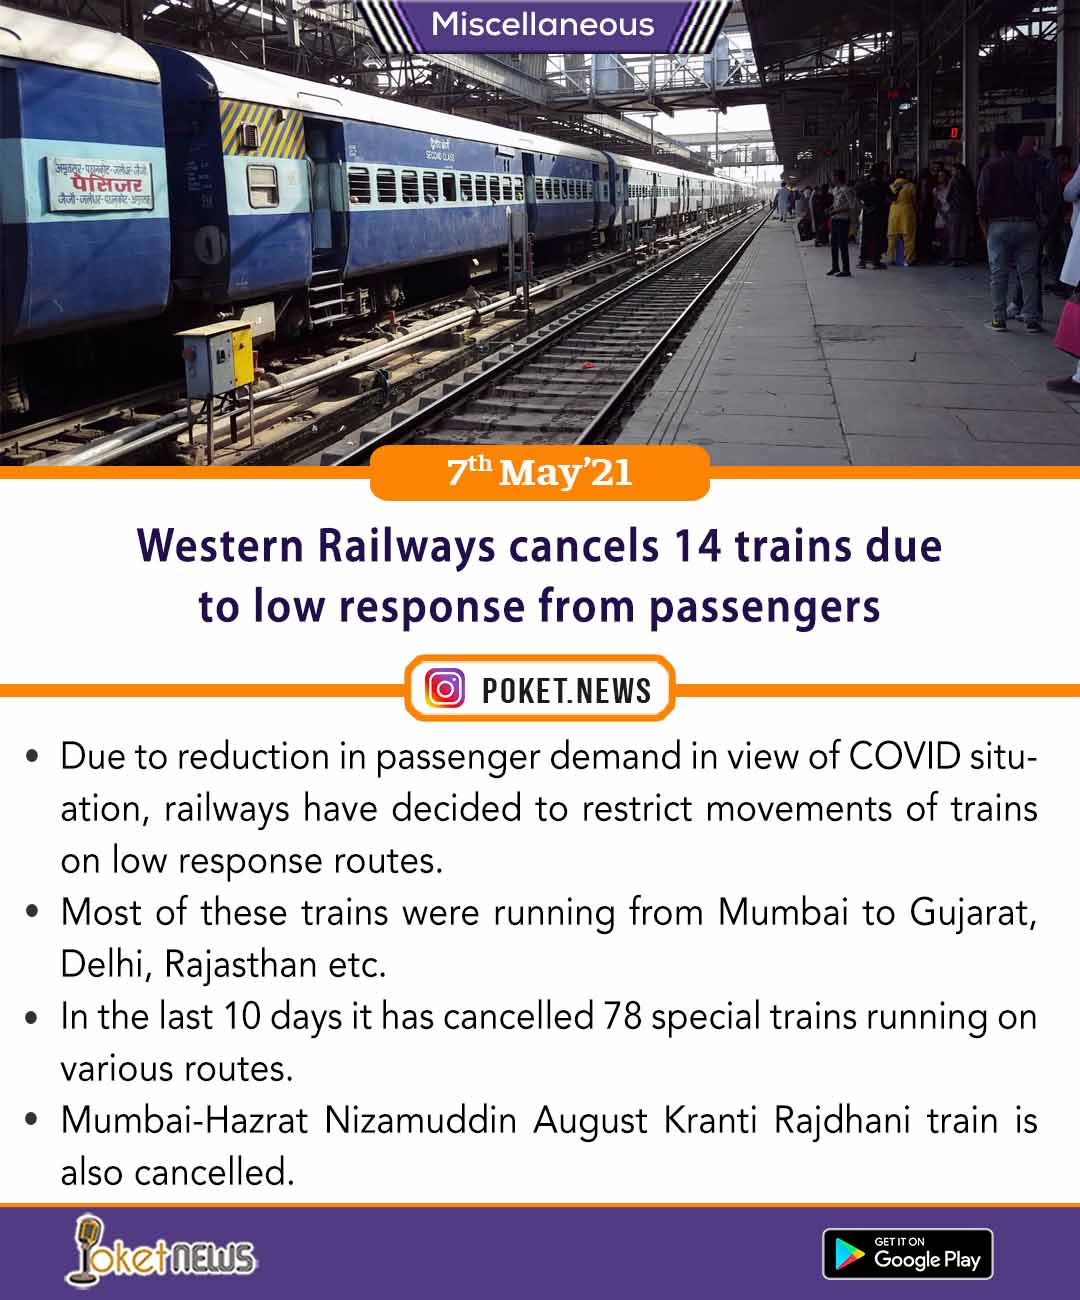 Western Railways cancels 14 trains due to low response from passengers